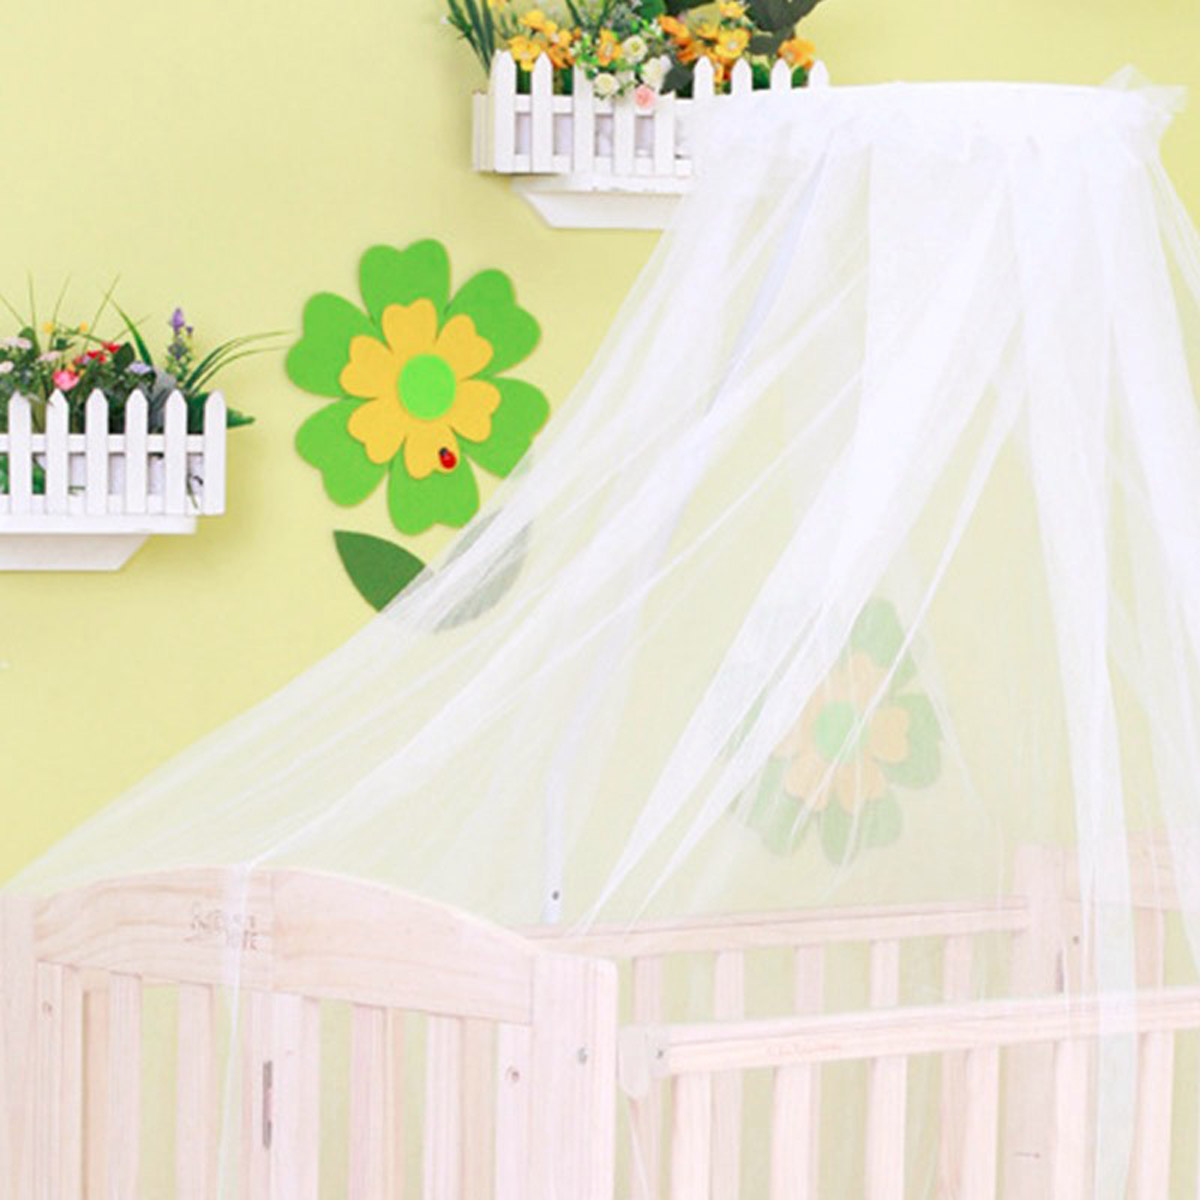 Crib tents for babies - Summer Baby Bed Cradle Hung Dome Mosquito Net Toddler Newborn Infant Bedding Tent Princess Mesh Kids